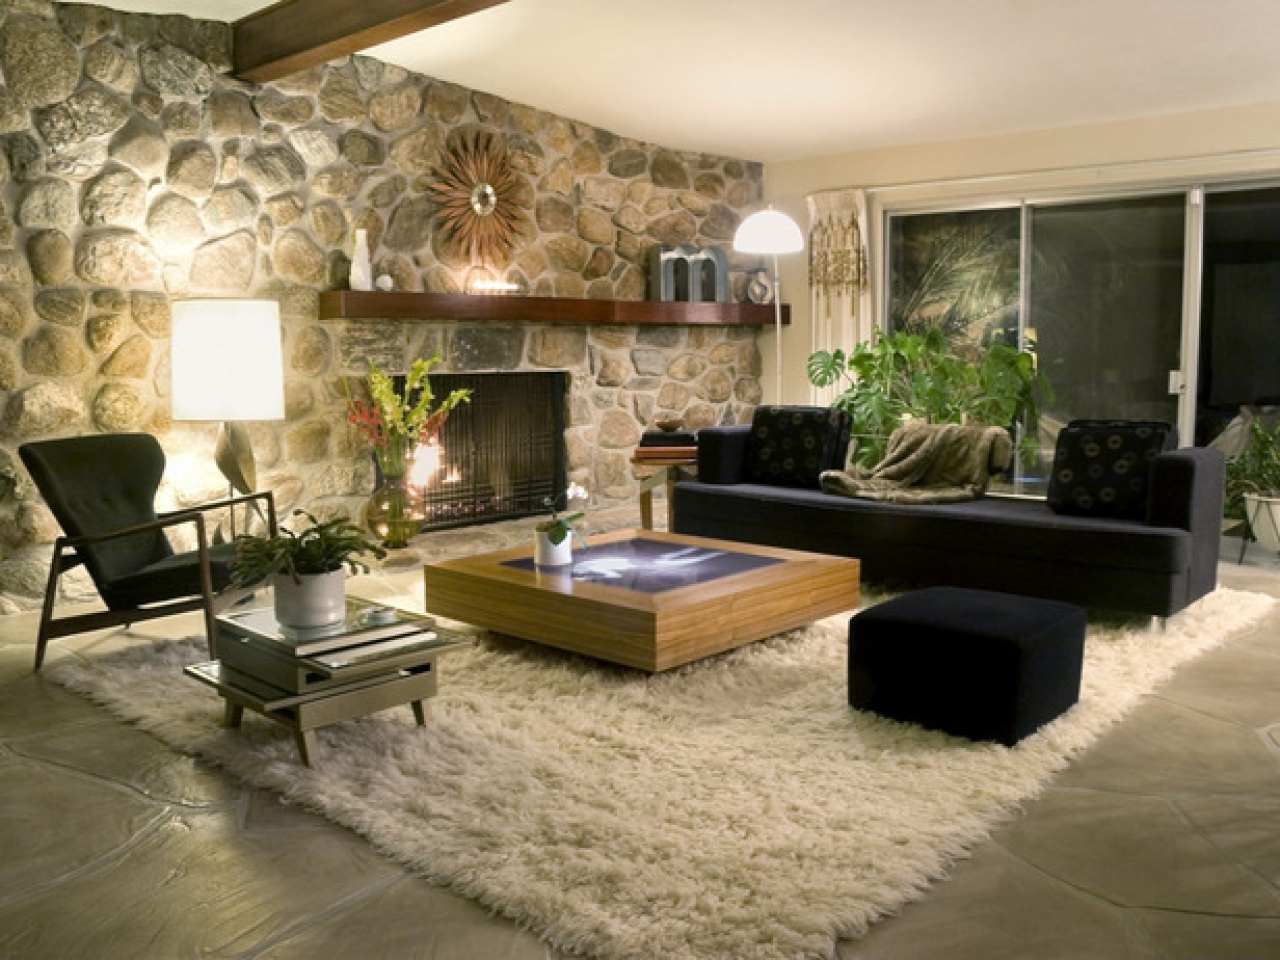 The advantages of the modern house decor